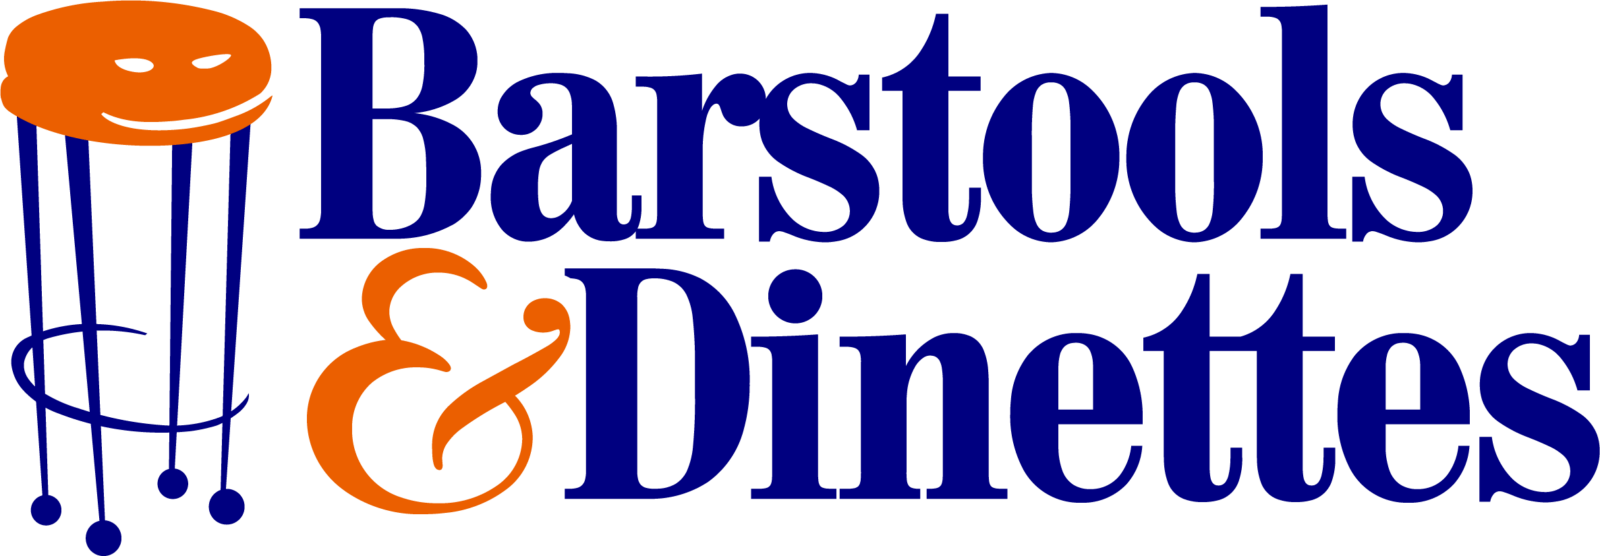 Barstools and Dinettes in Raleigh